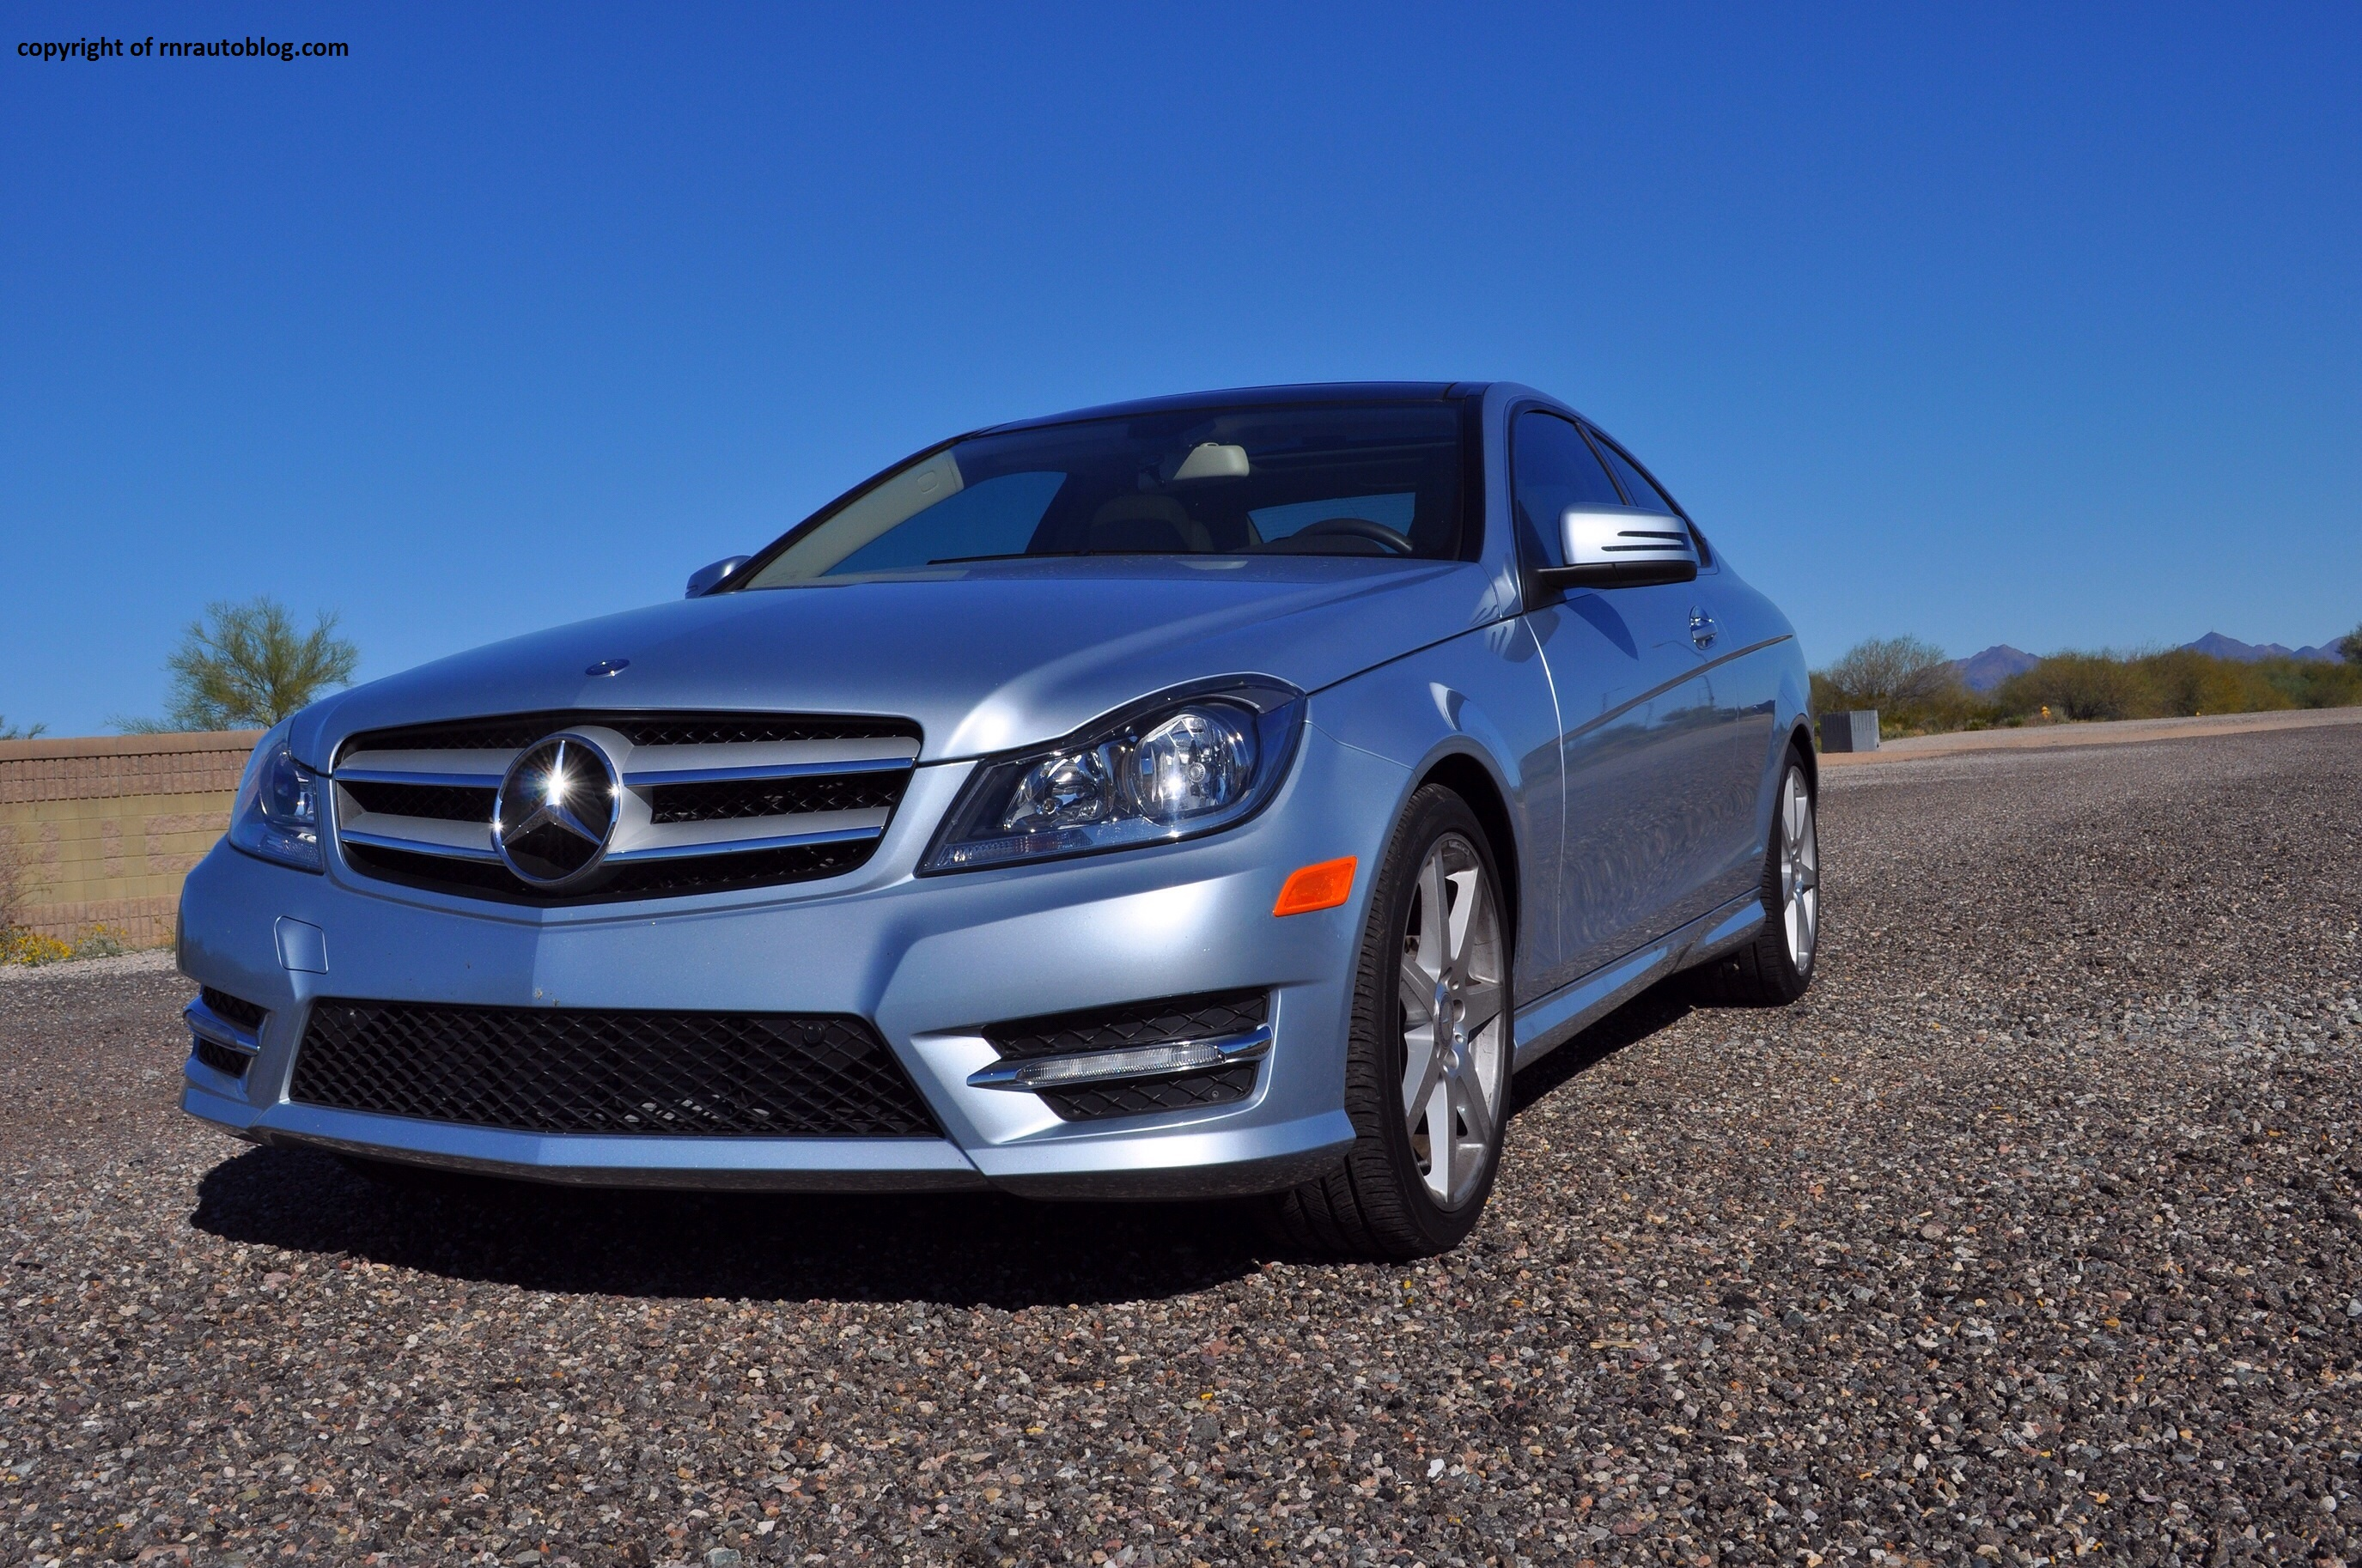 2012 mercedes benz c250 coupe review rnr automotive blog for 2012 mercedes benz c300 tire size